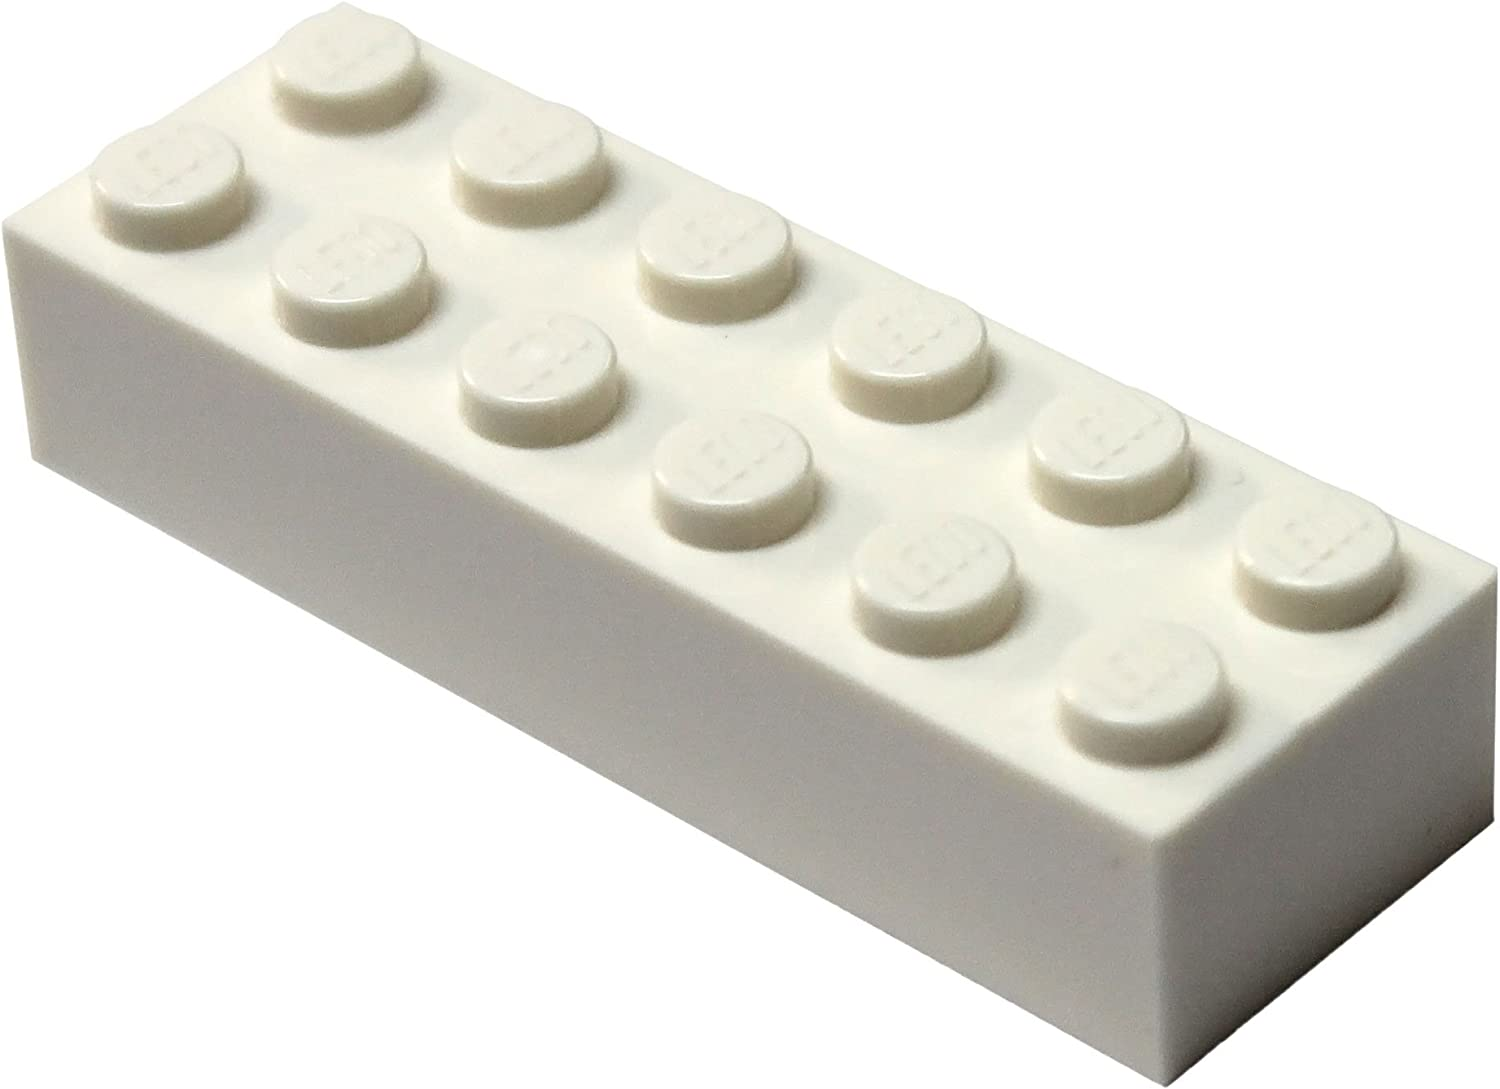 Lego WHITE 2x6 PLATE Lot of 8 Plates